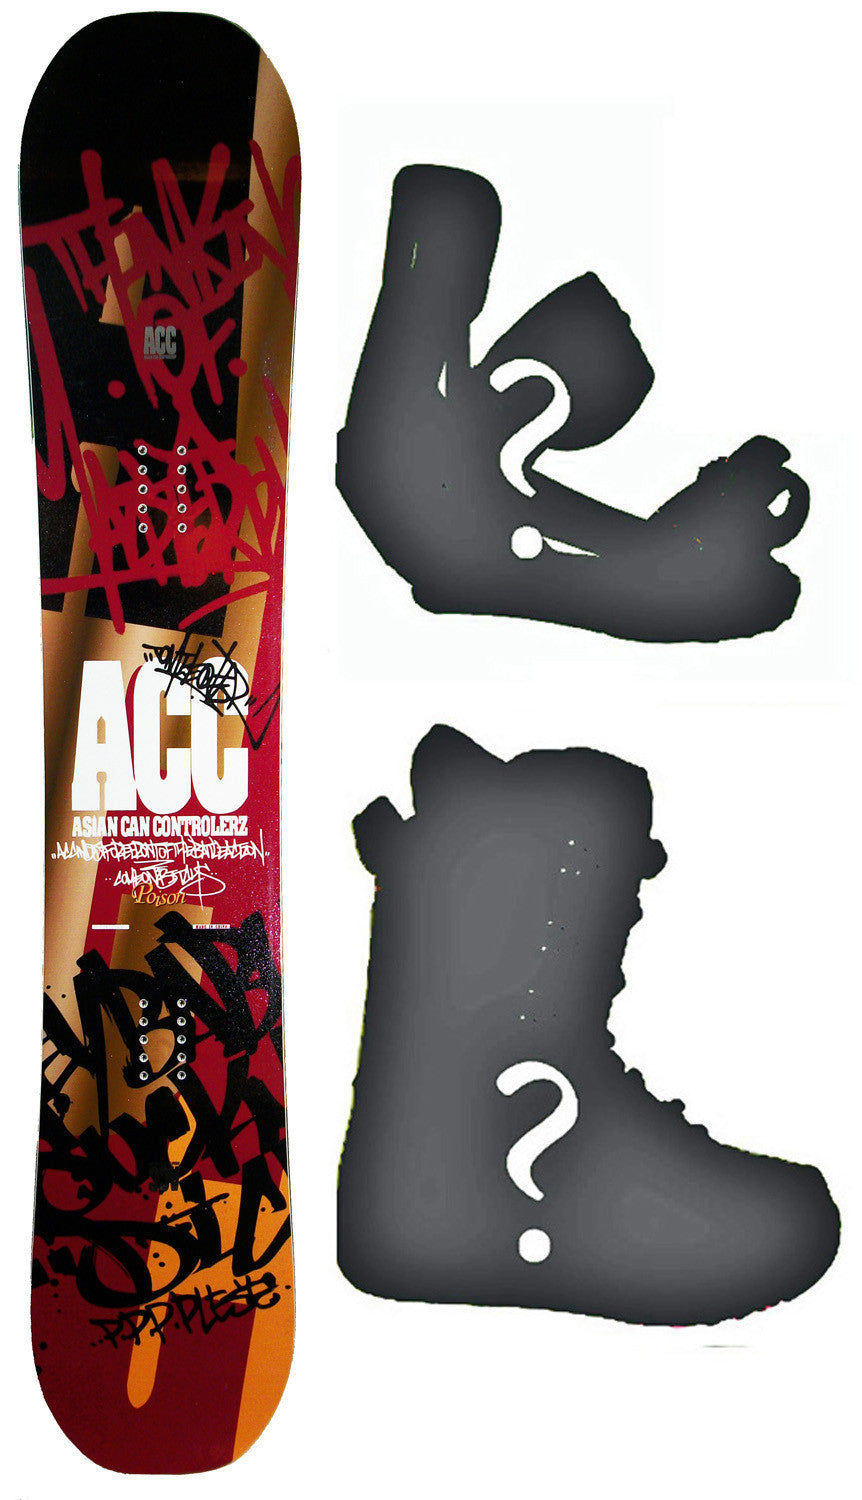 158cm Asian Can Controlerz Poison W-Rocker Snowboard, Build a Package with Boots and Bindings